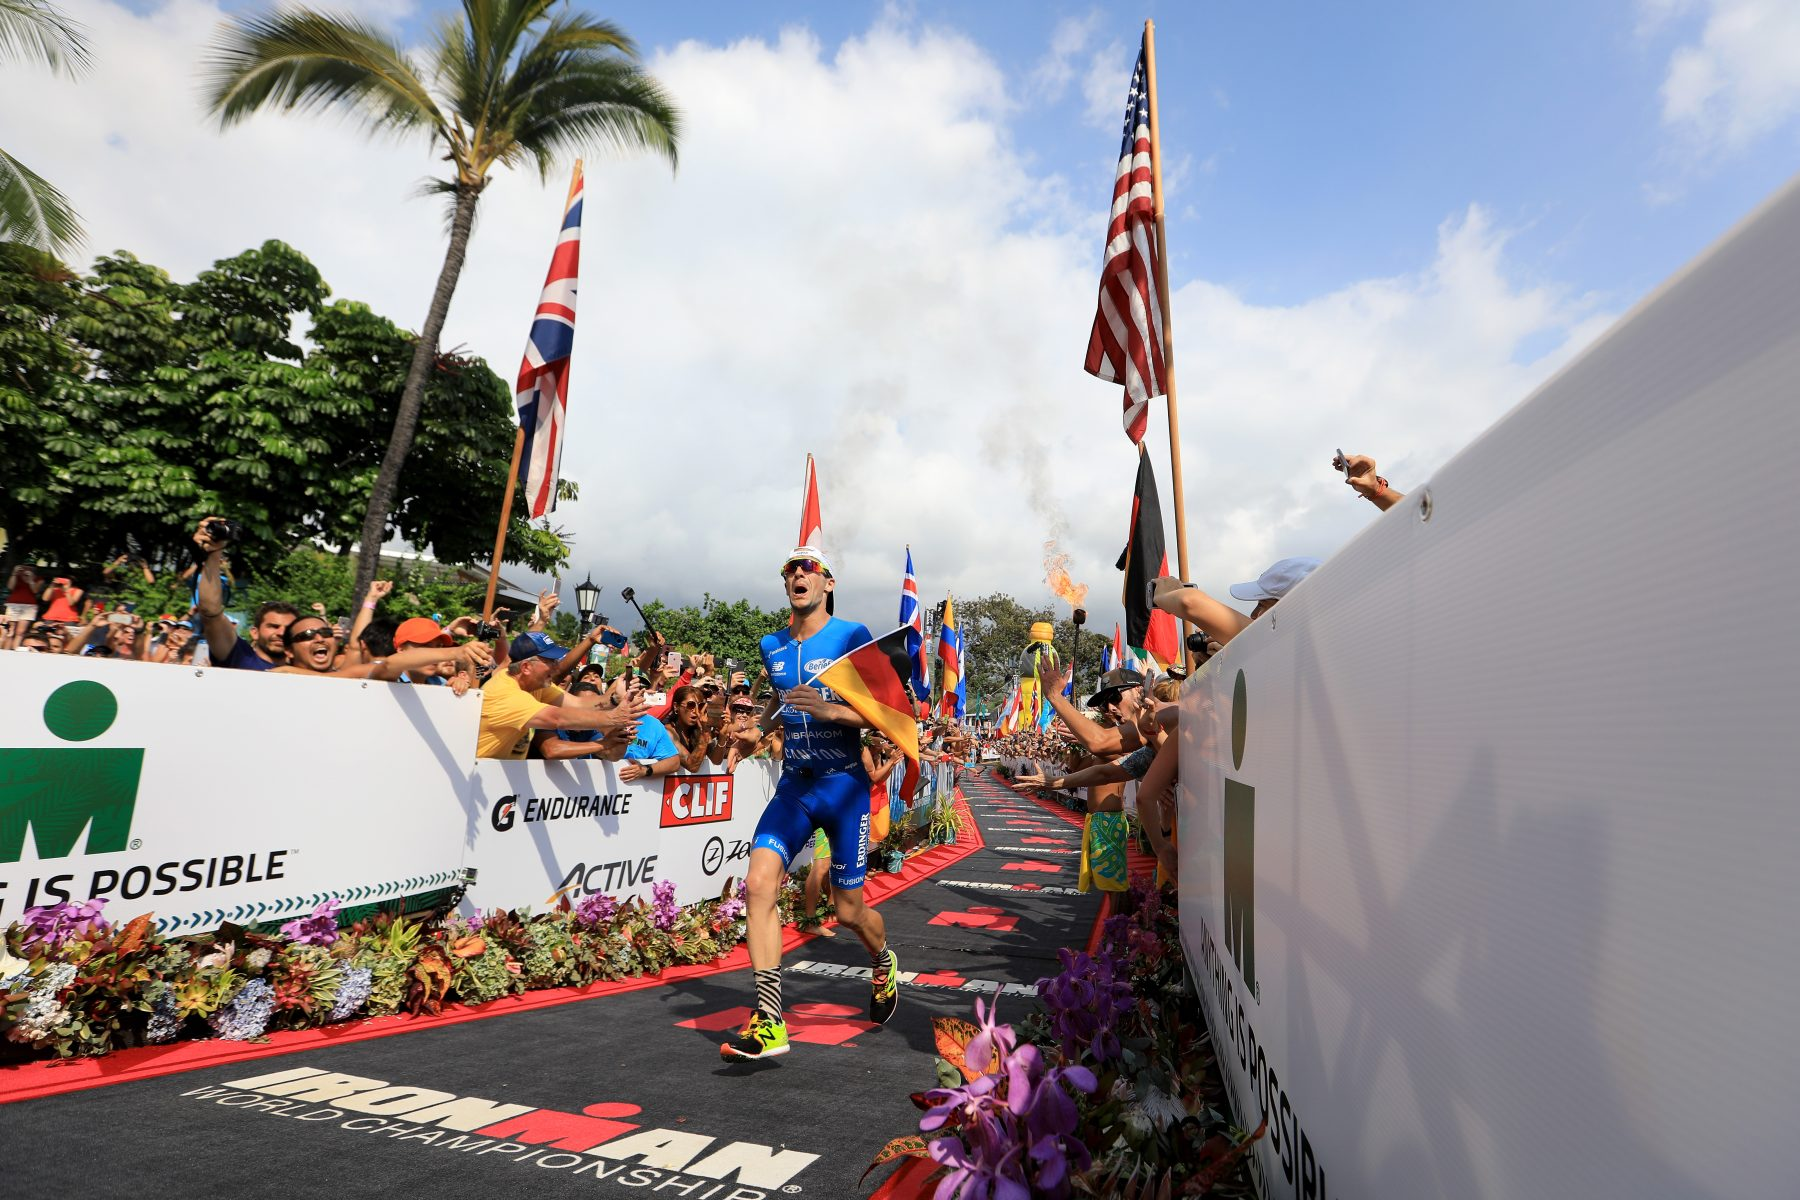 KAILUA KONA, HI - OCTOBER 14: Patrick Lange of Germany celebrates before crossing the finish line to win the IRONMAN World Championship and setting a course record of 8:01.39 beating Craig Alexander's 2011 record of 8:03.56 on October 14, 2017 in Kailua Kona, Hawaii. (Photo by Sean M. Haffey/Getty Images for IRONMAN)